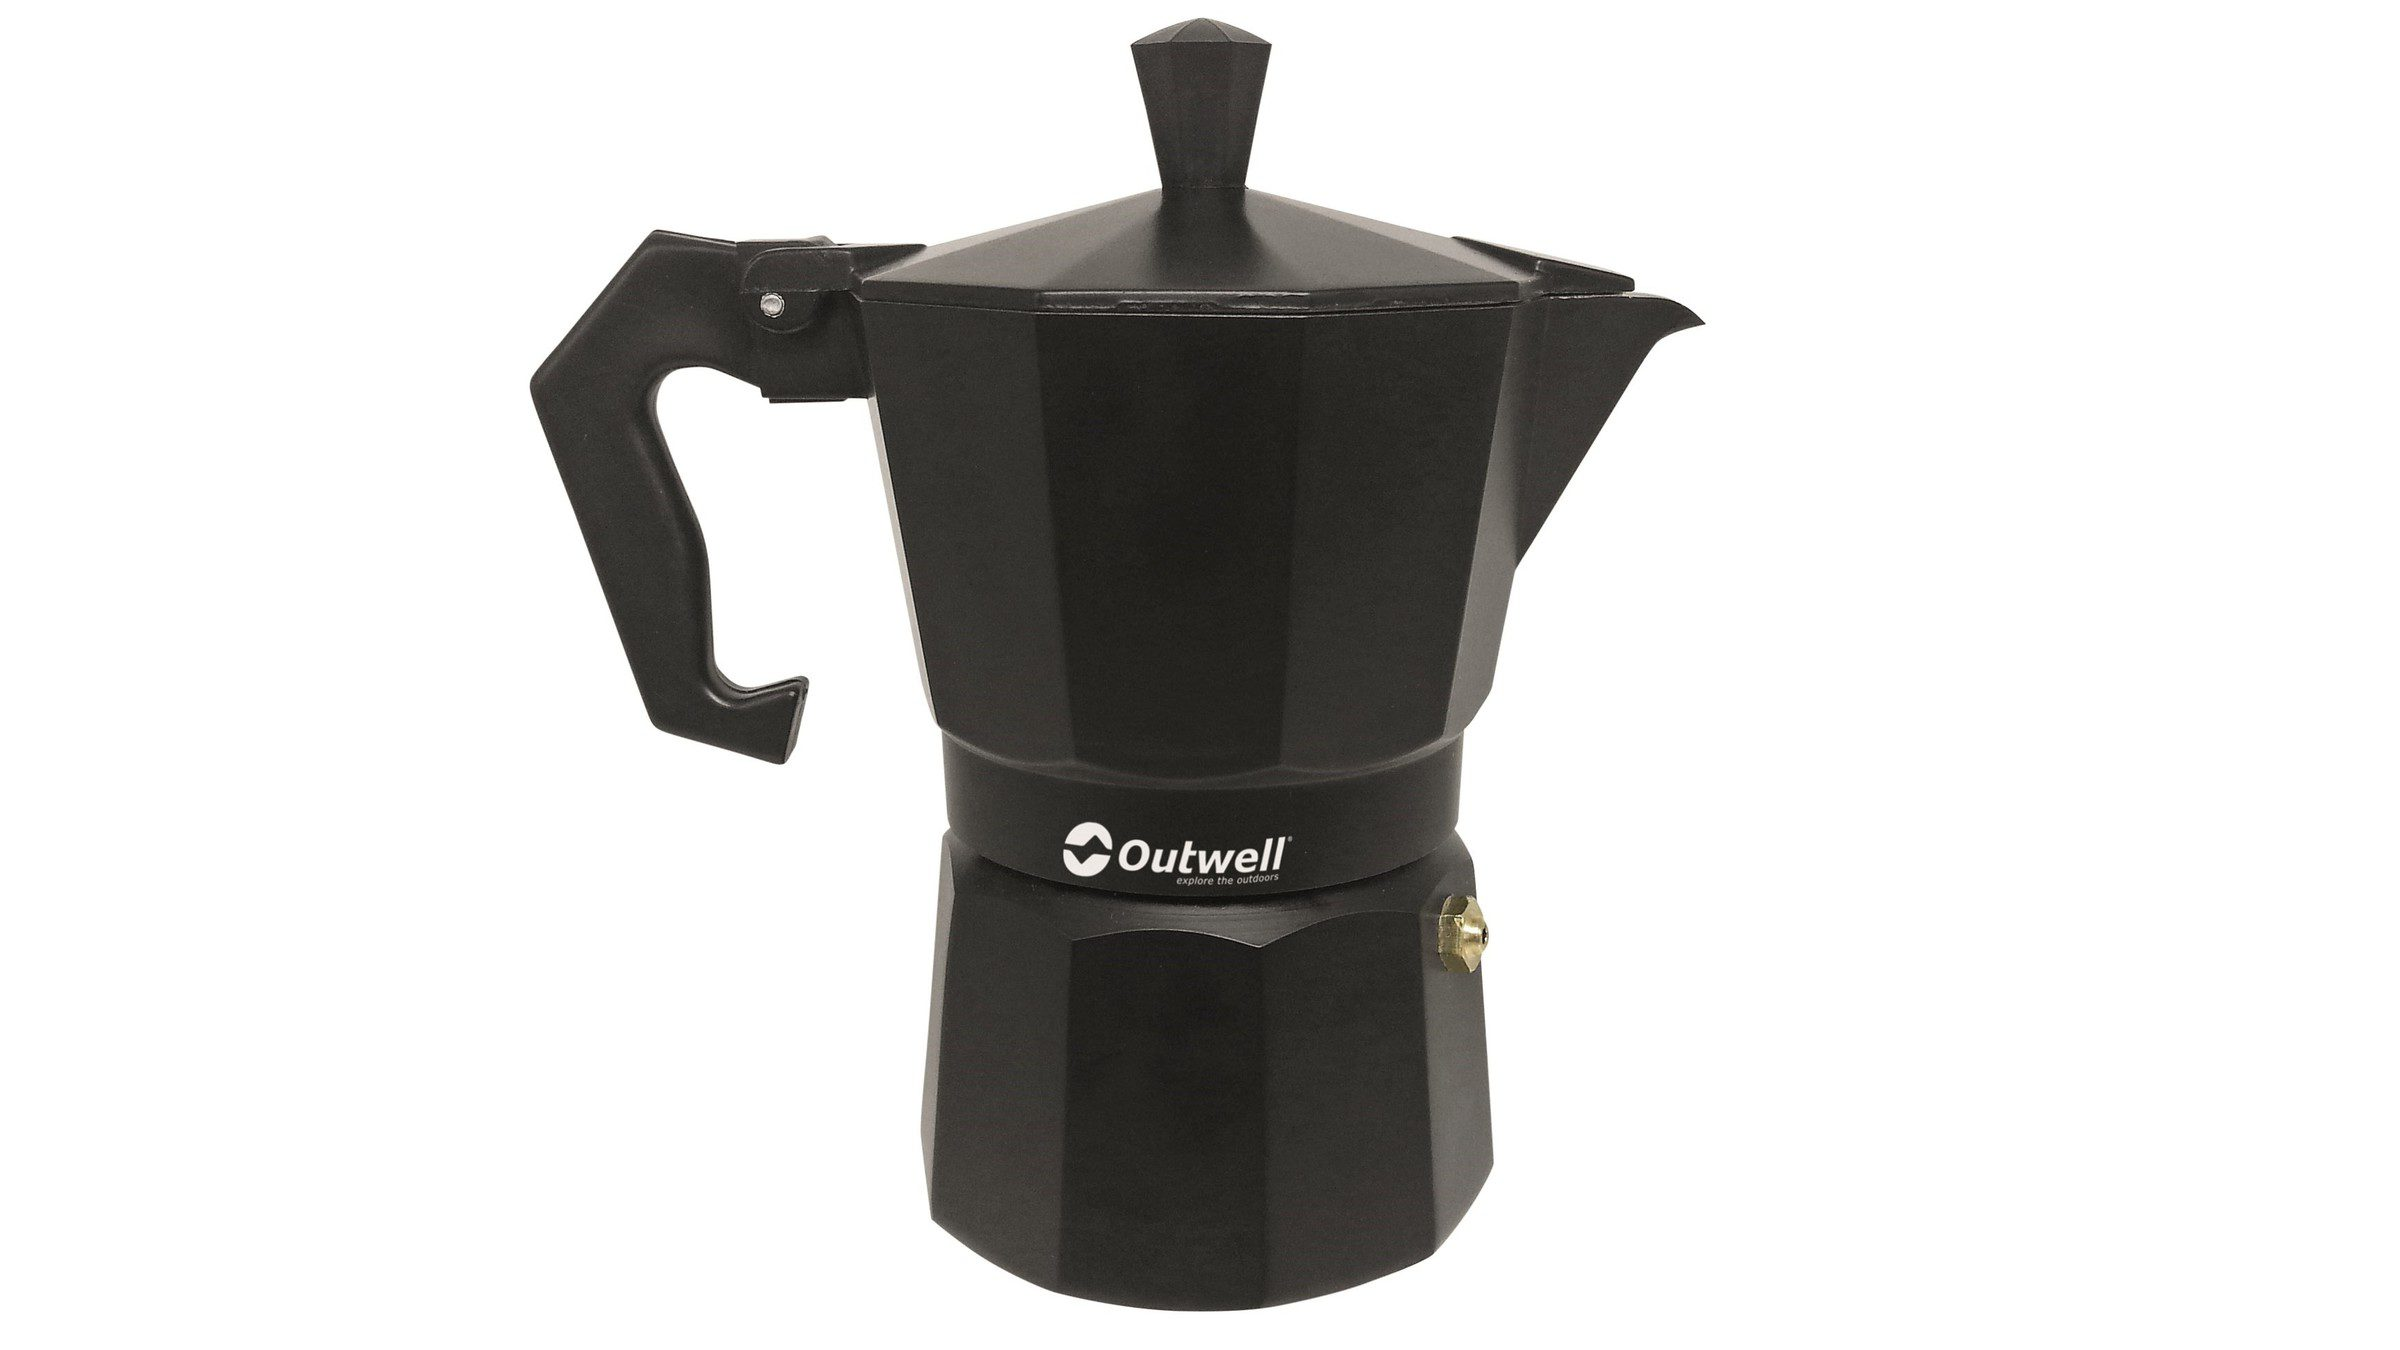 Outwell Alava Espresso Maker - 6 cups